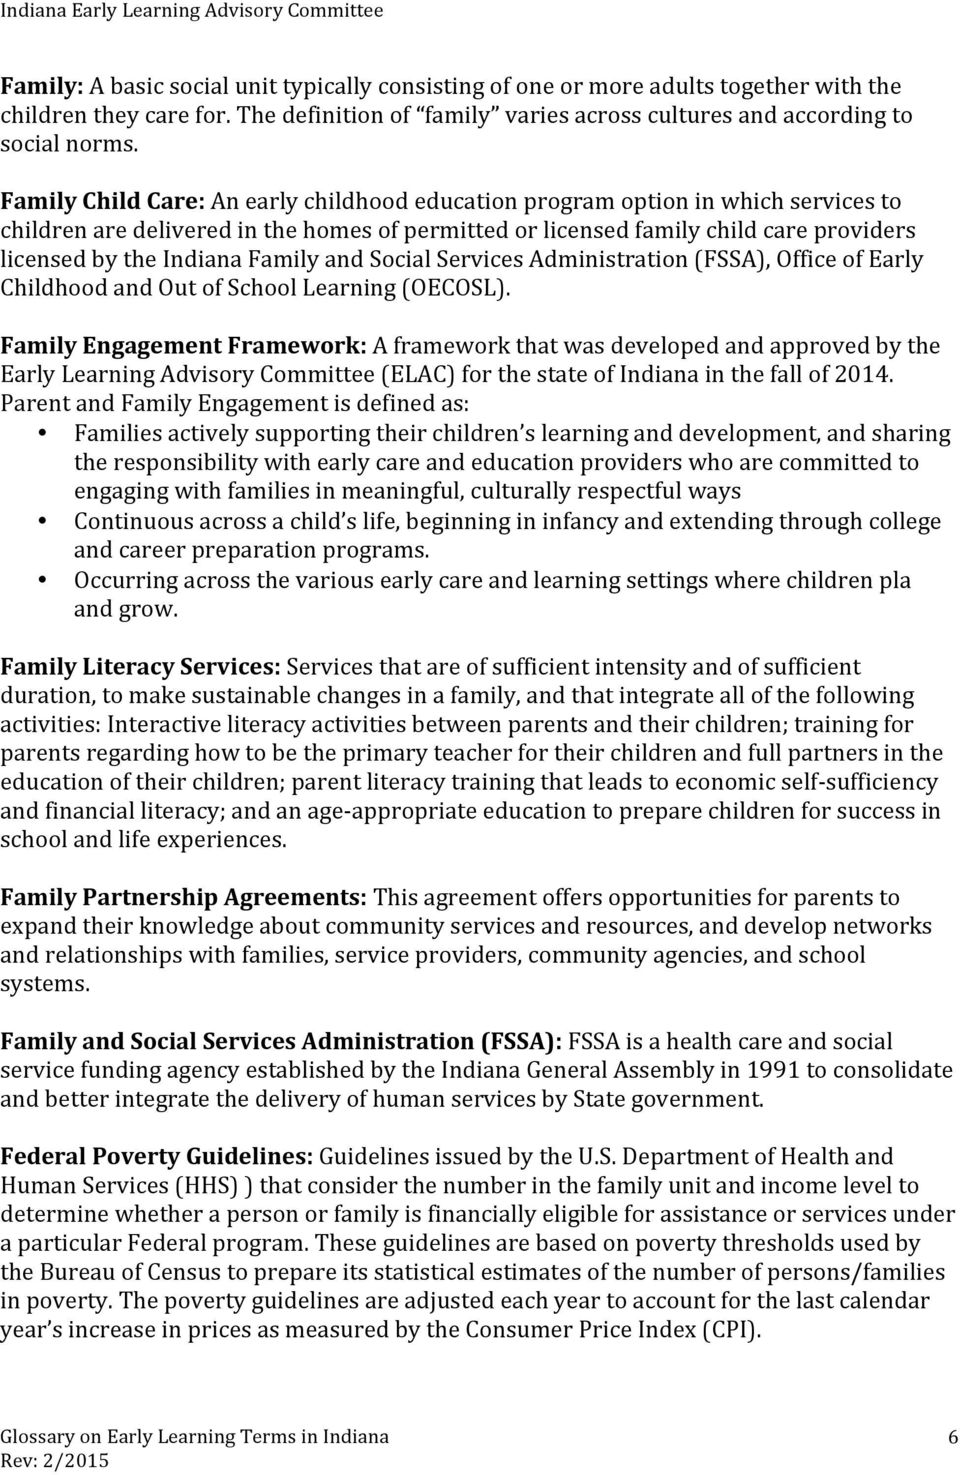 Family and Social Services Administration (FSSA), Office of Early Childhood and Out of School Learning (OECOSL).